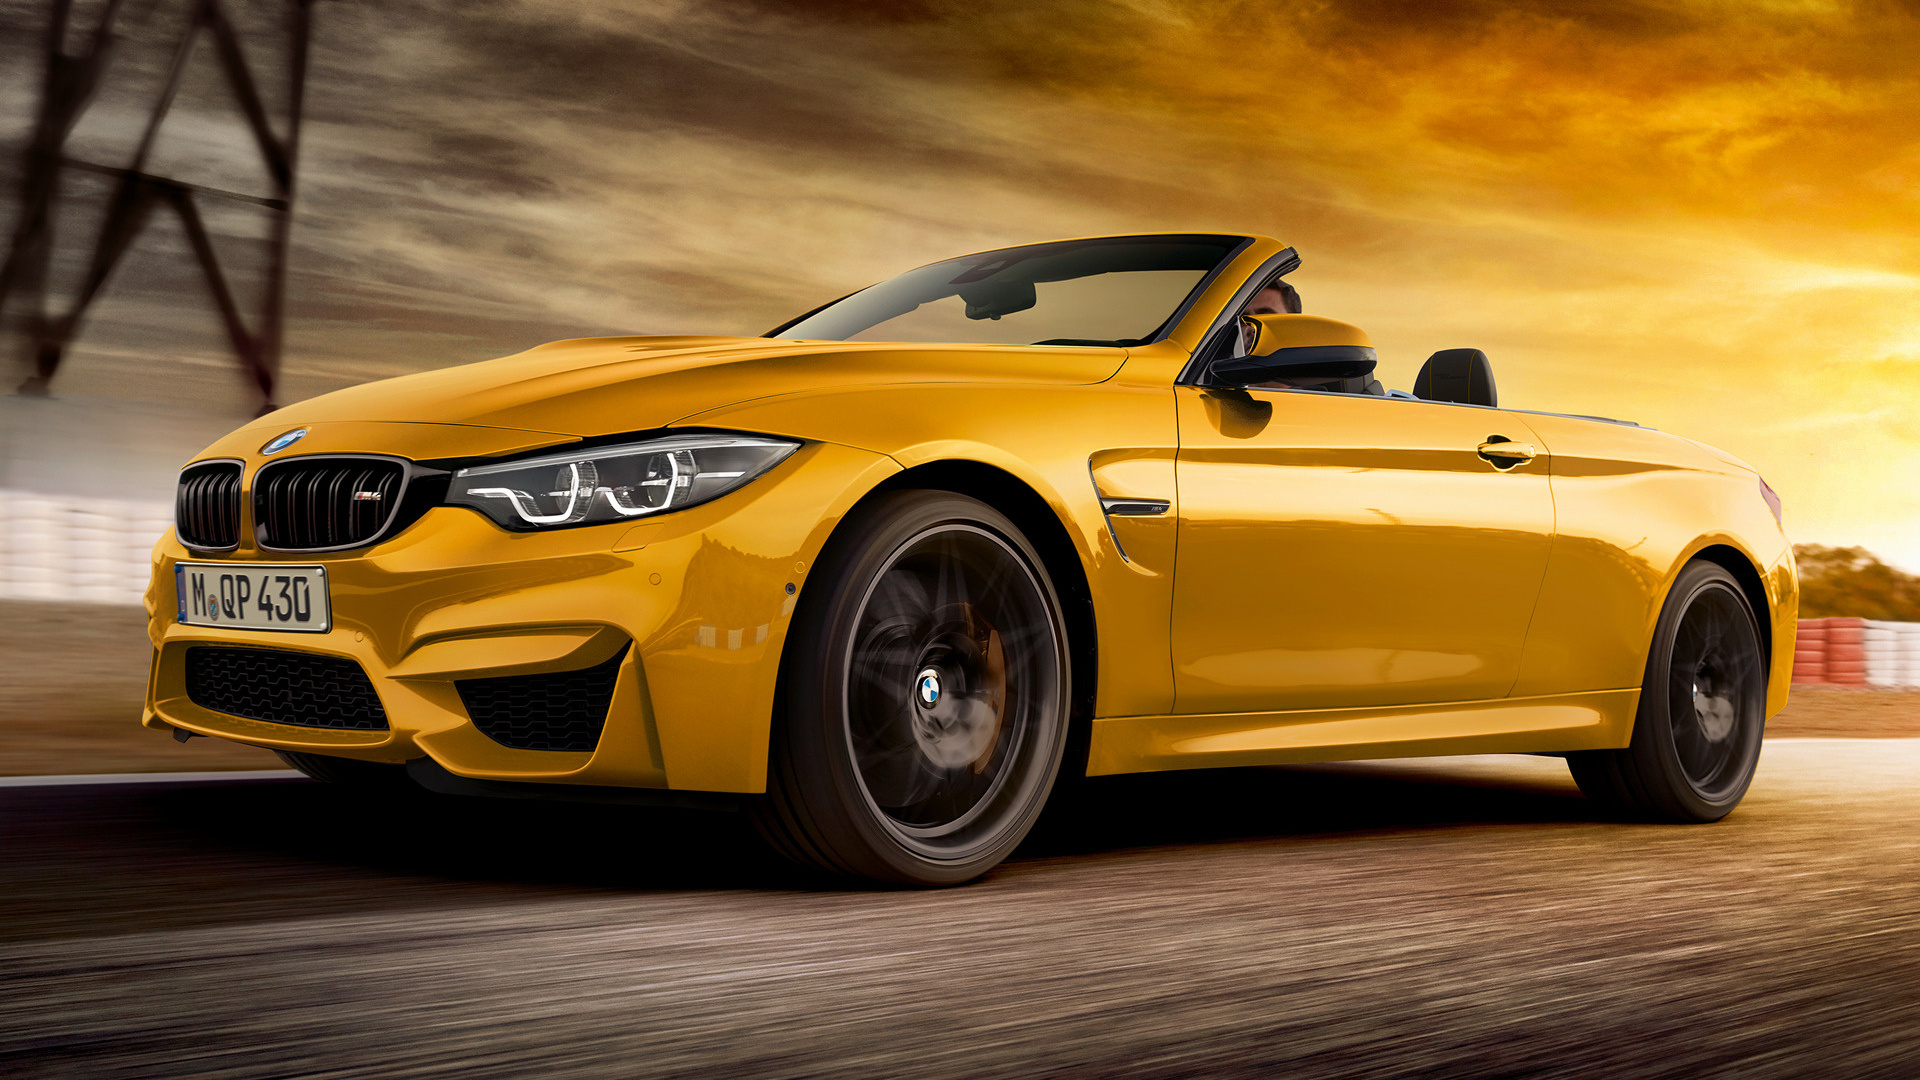 2018 Bmw M4 Convertible 30 Years Edition Wallpapers And